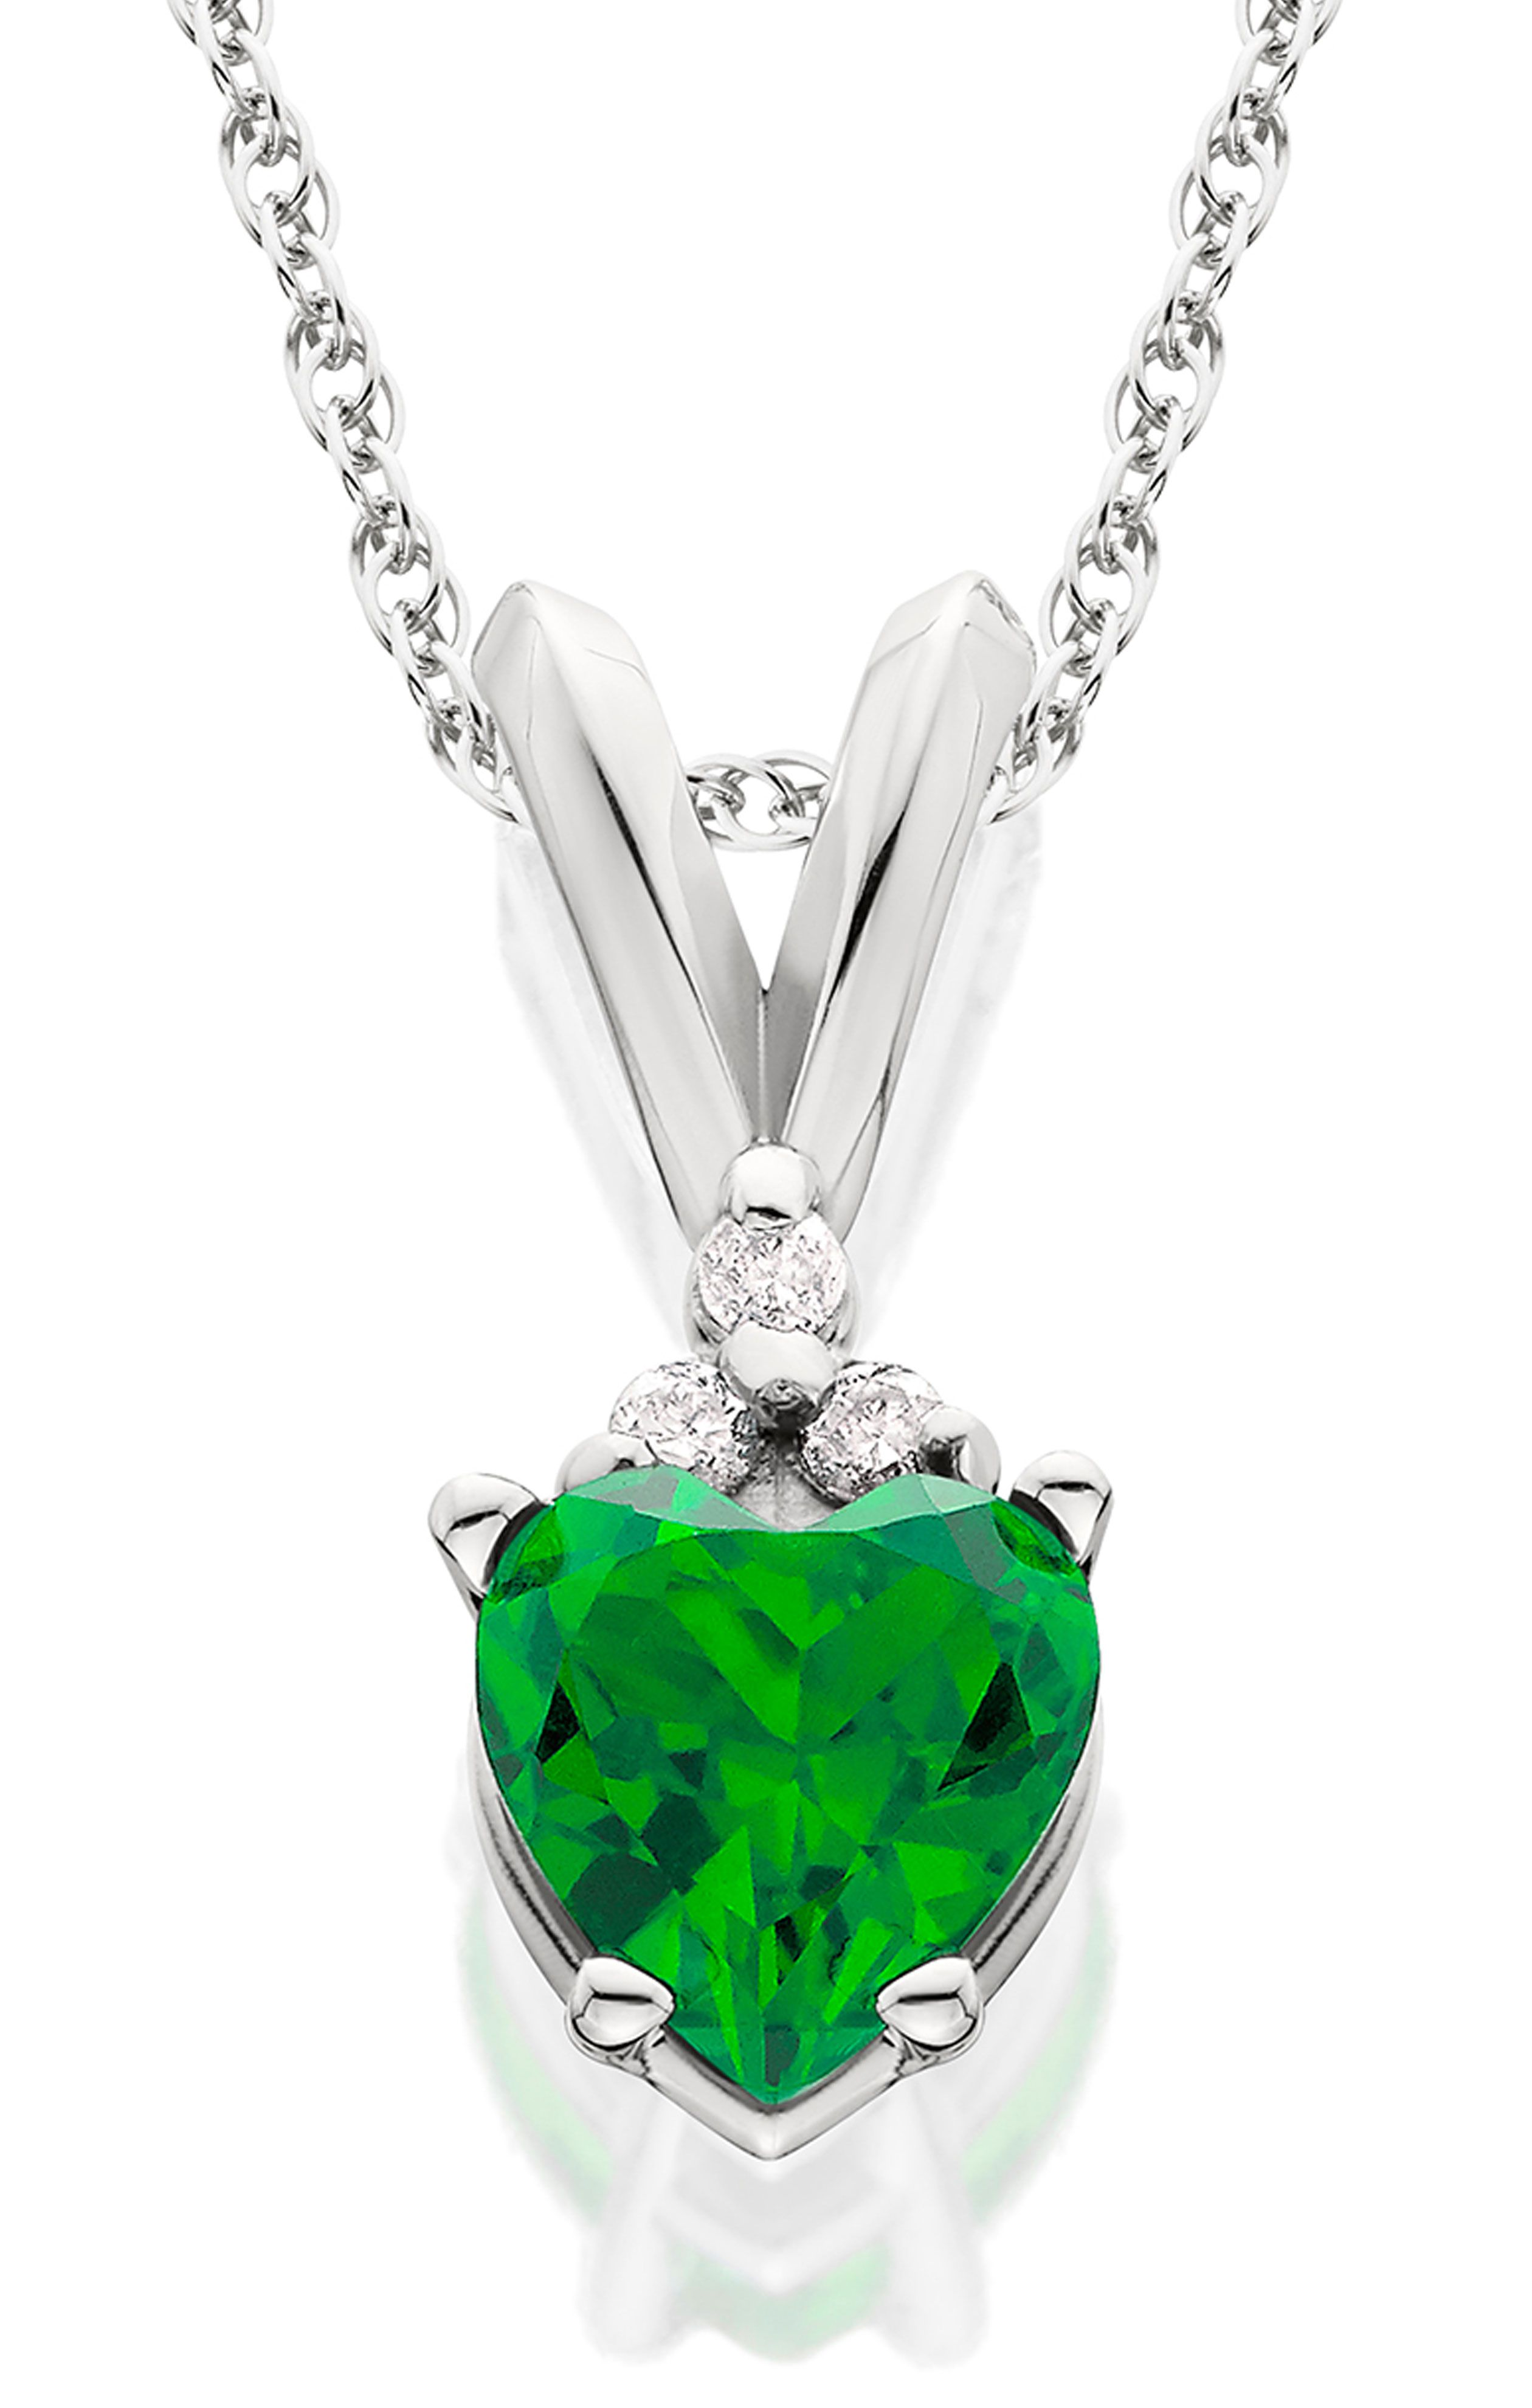 necklace diamond carat wg catalog pendant stone emerald